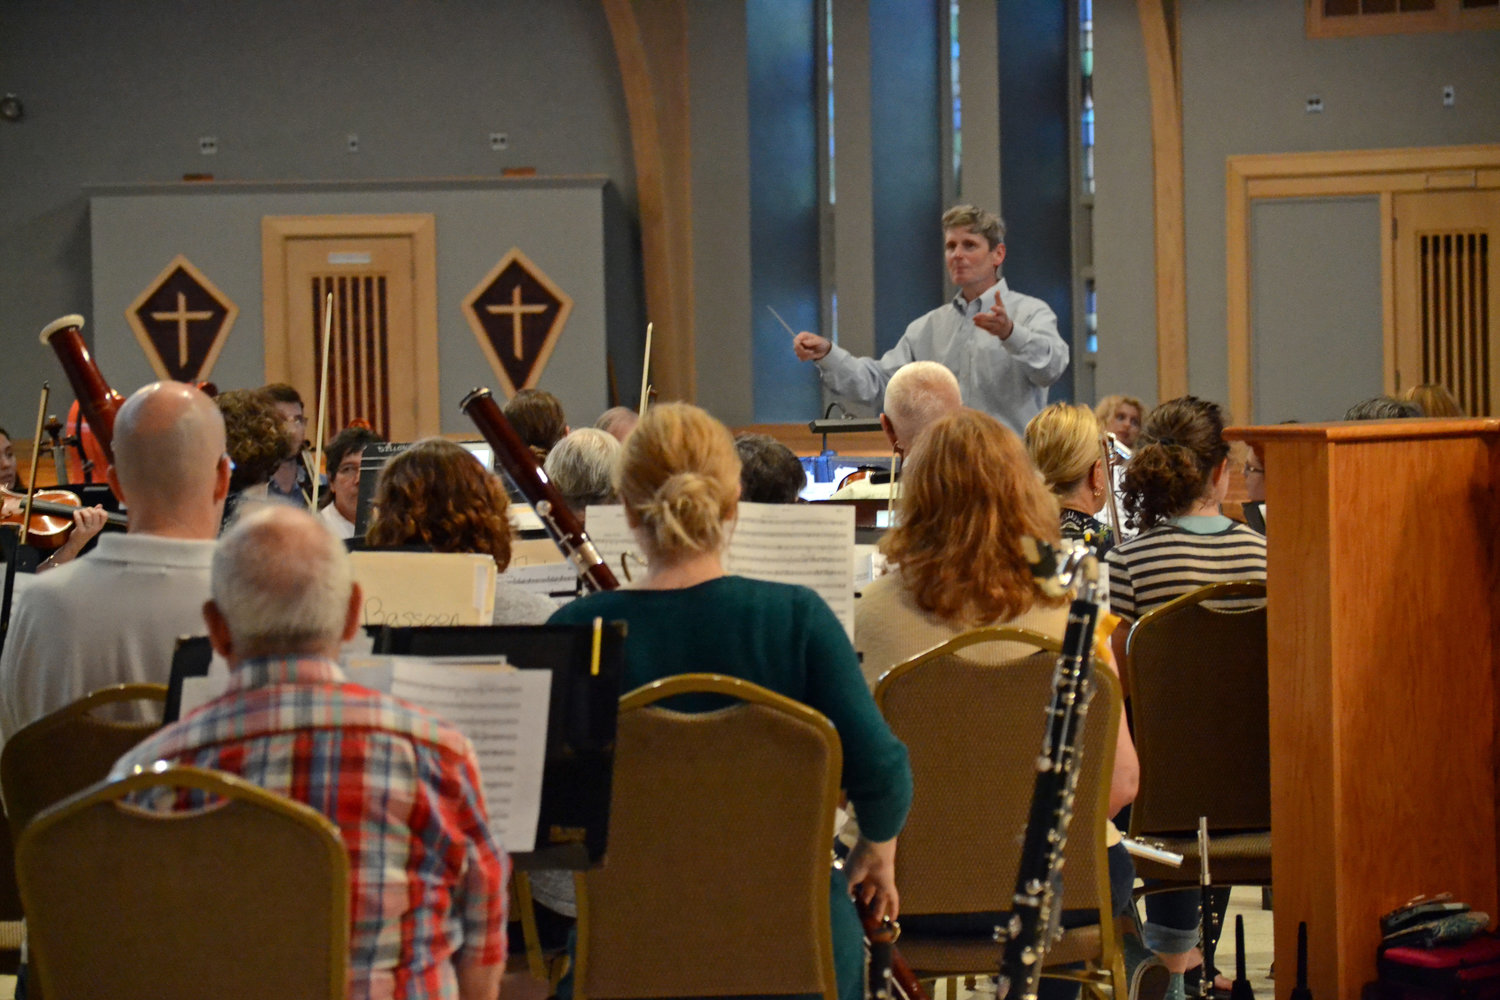 GOOD CONDUCT: Music Director Dr. Brian Cardany, in his inaugural season with the Pops, lifts the orchestra into a swell during a rehearsal at St. Kevin on Tuesday night.